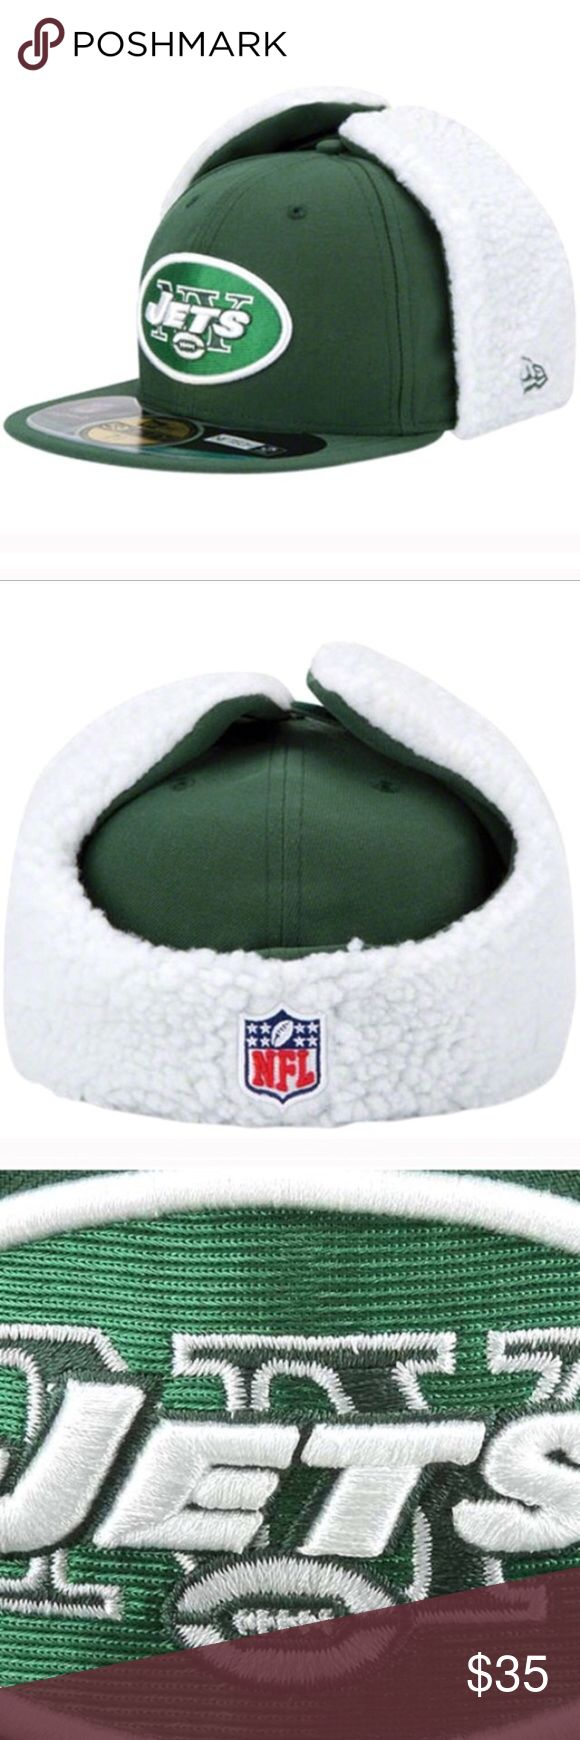 New York Jets hat Celebrate your New York Jets fandom with this On-Field Dog Ear 59FIFTY hat from New Era! It has embroidered New York Jets graphics that will show off your team pride in authentic NFL style. It's also got convertible lined ear flaps and NE Tech material to keep you comfortable on the next New York Jets game day!  Moisture-wicking fabric Officially licensed NFL product Six panels with eyelets UV protection Water-repellant treatment Convertible lined ear flaps with hook and…